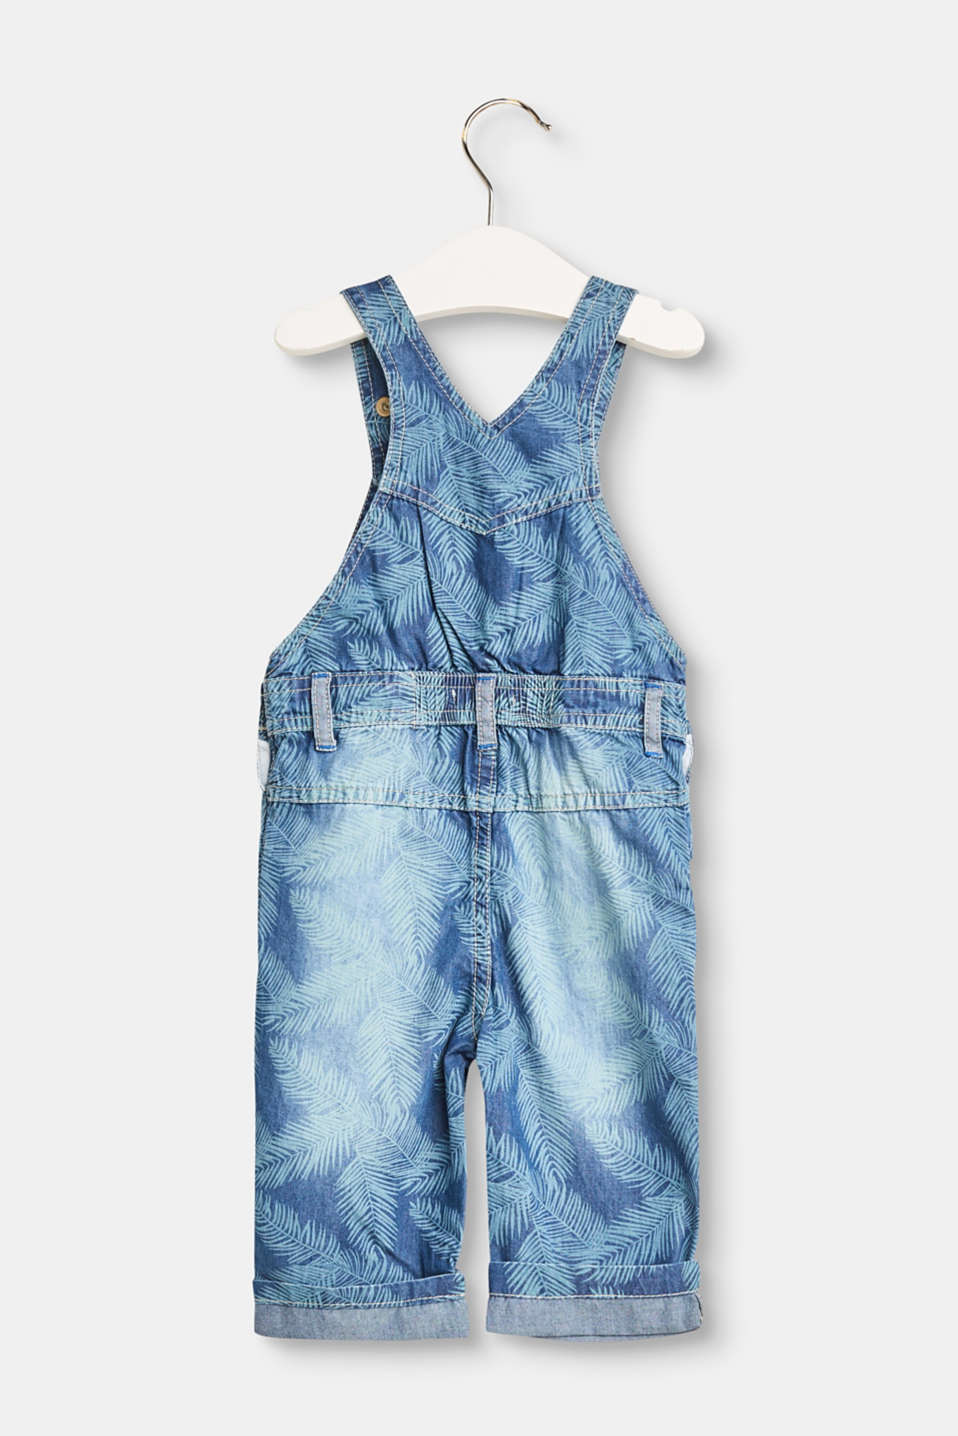 Ultra lightweight denim dungarees with a palm print